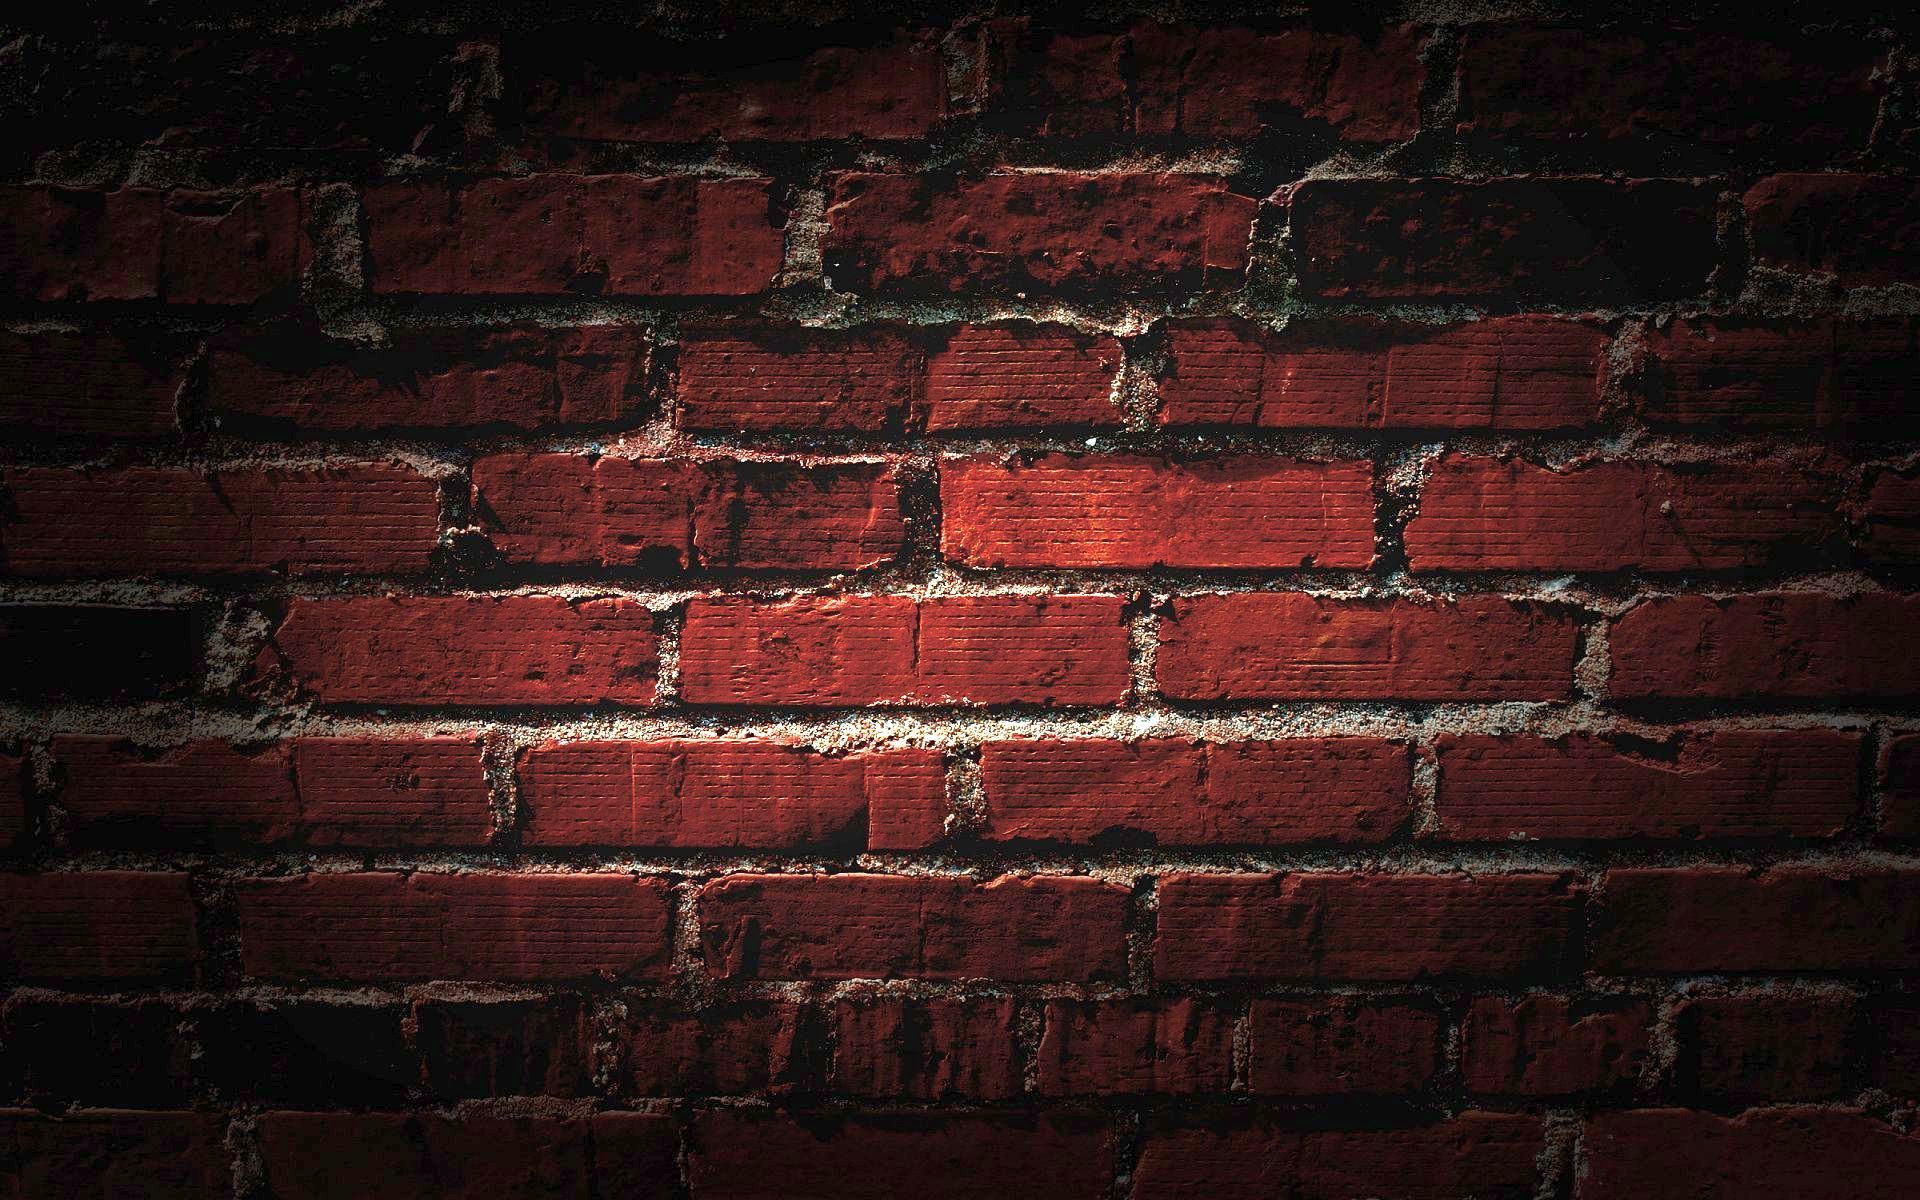 Awesome ultra hd bricks wall ultra hd abstract for Wallpaper images for house walls